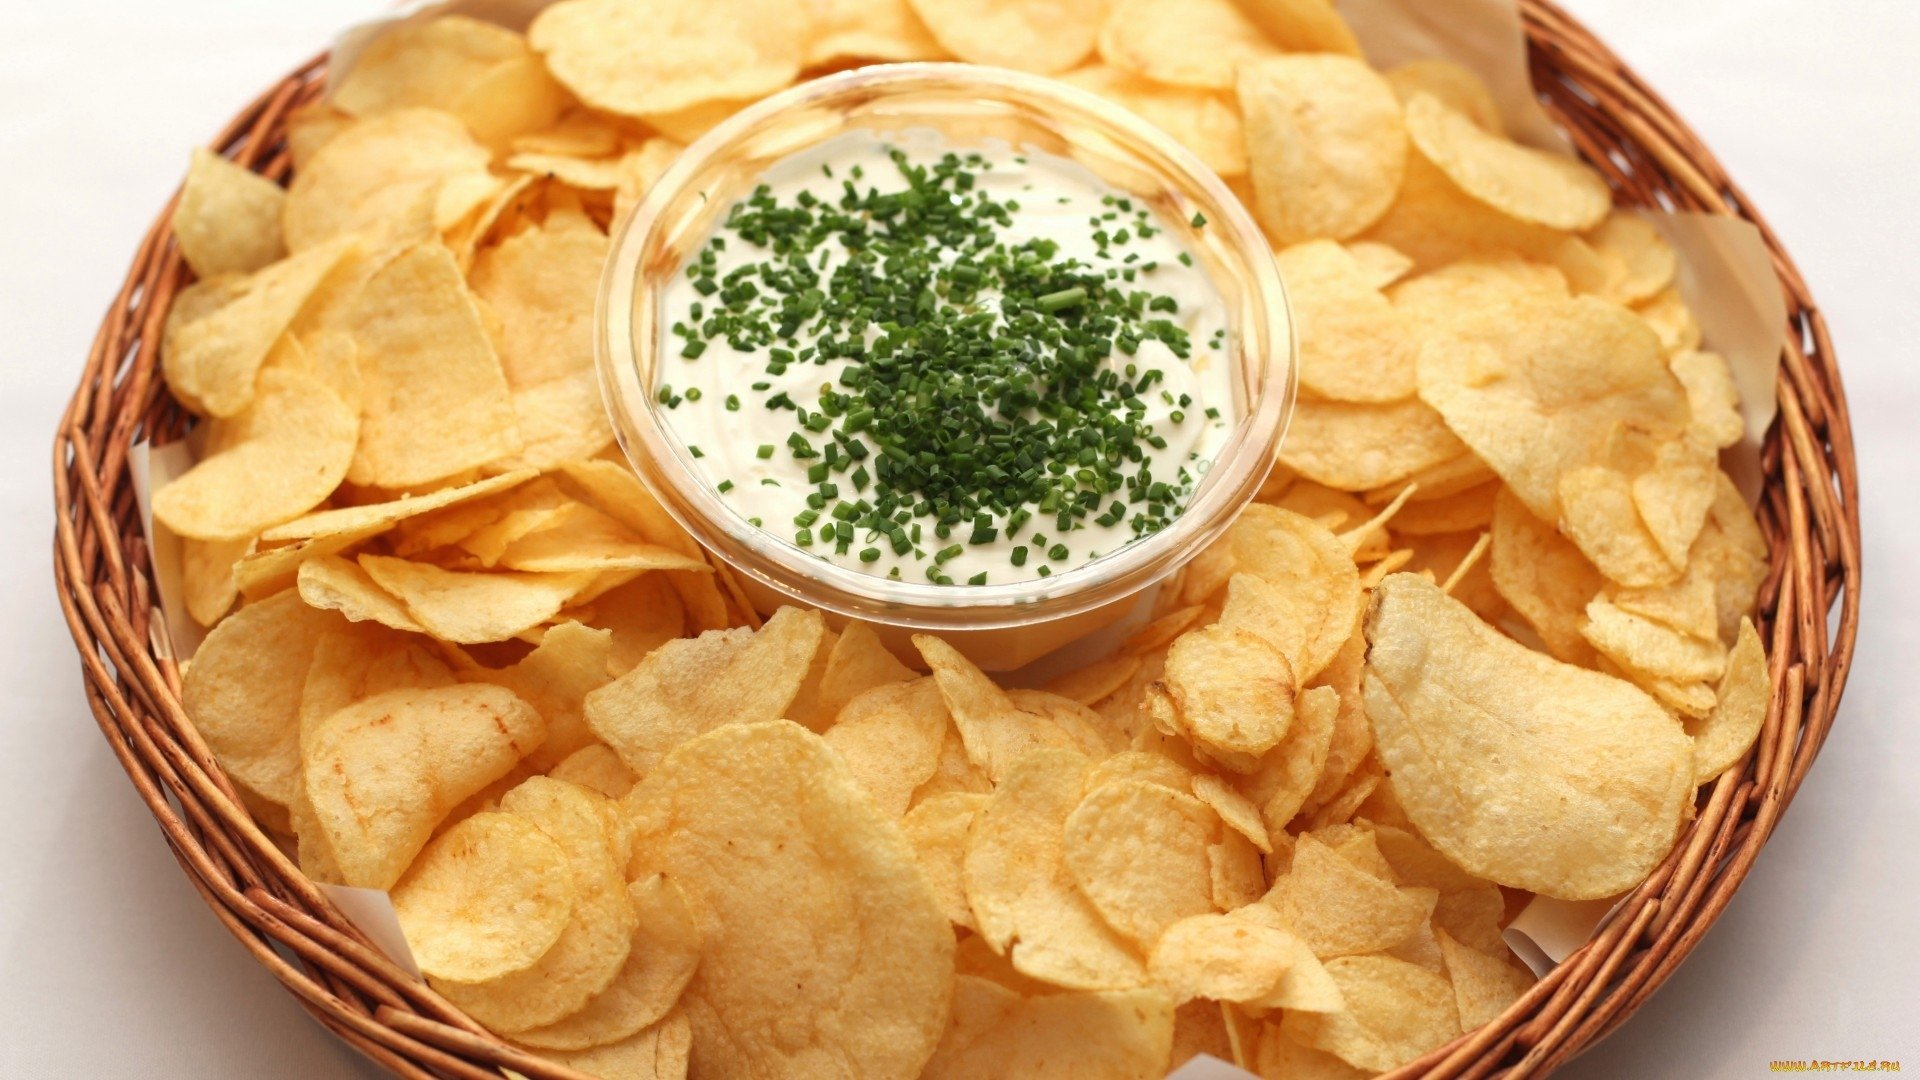 Chips Wallpaper Image Group 46 1920x1080